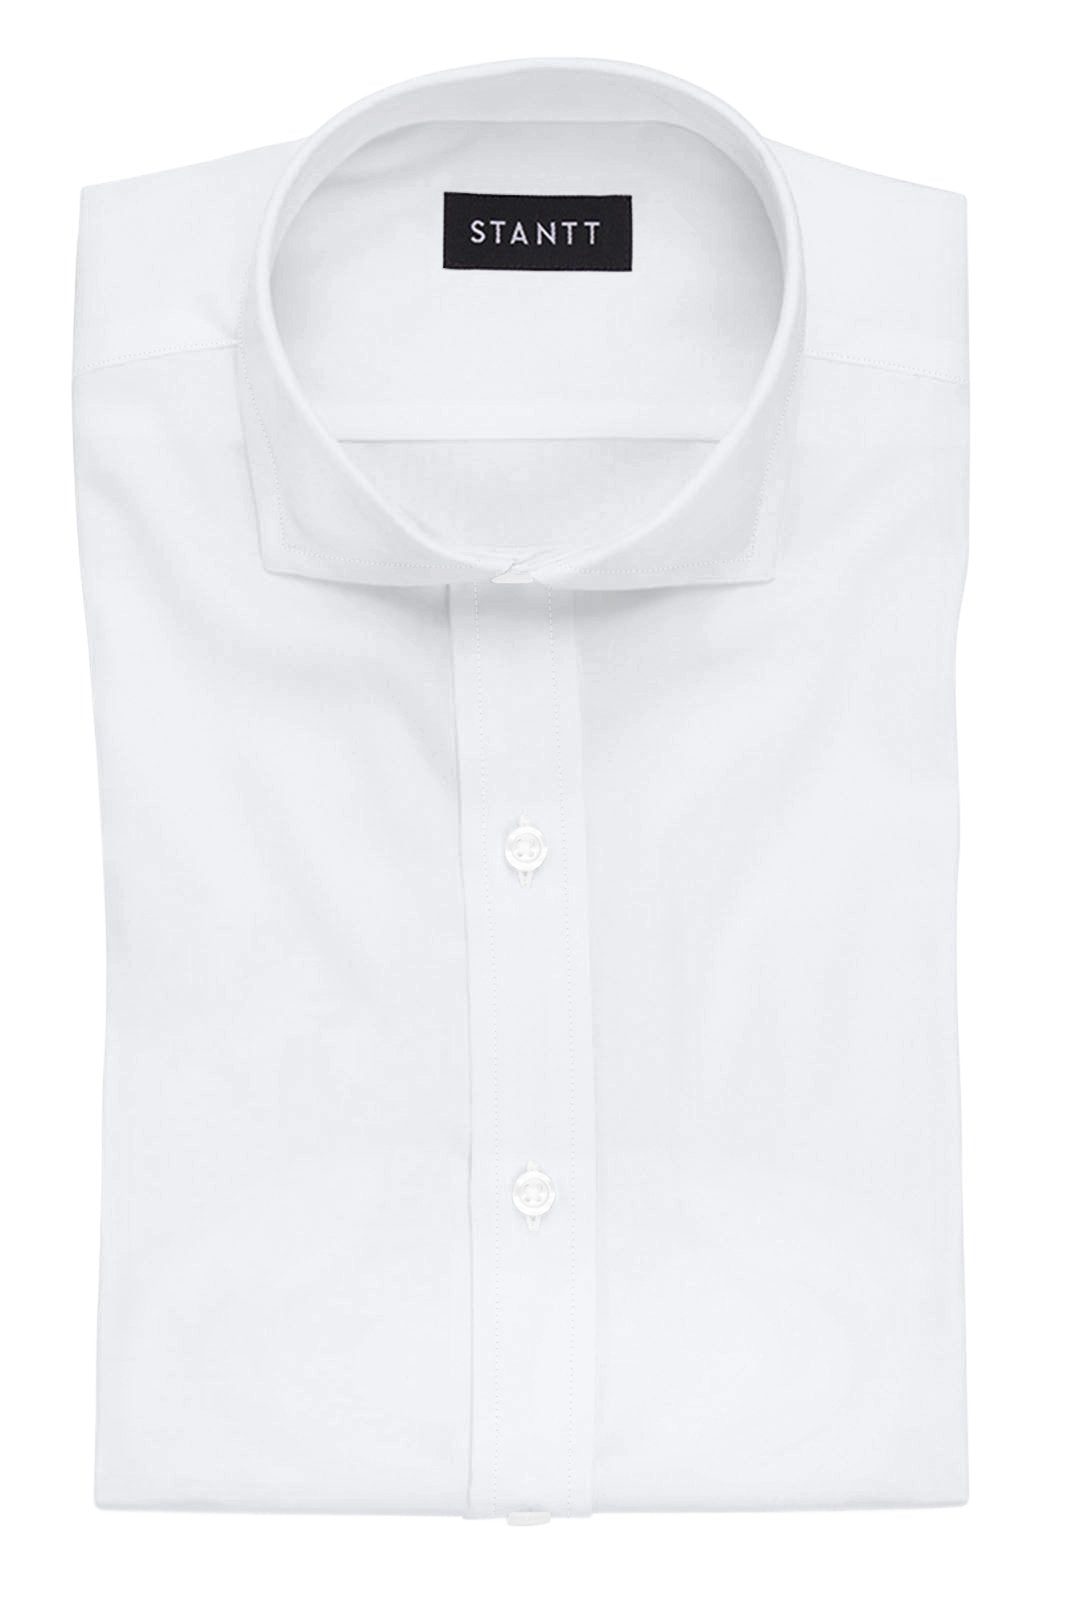 Performance White: Cutaway Collar, Barrel Cuff